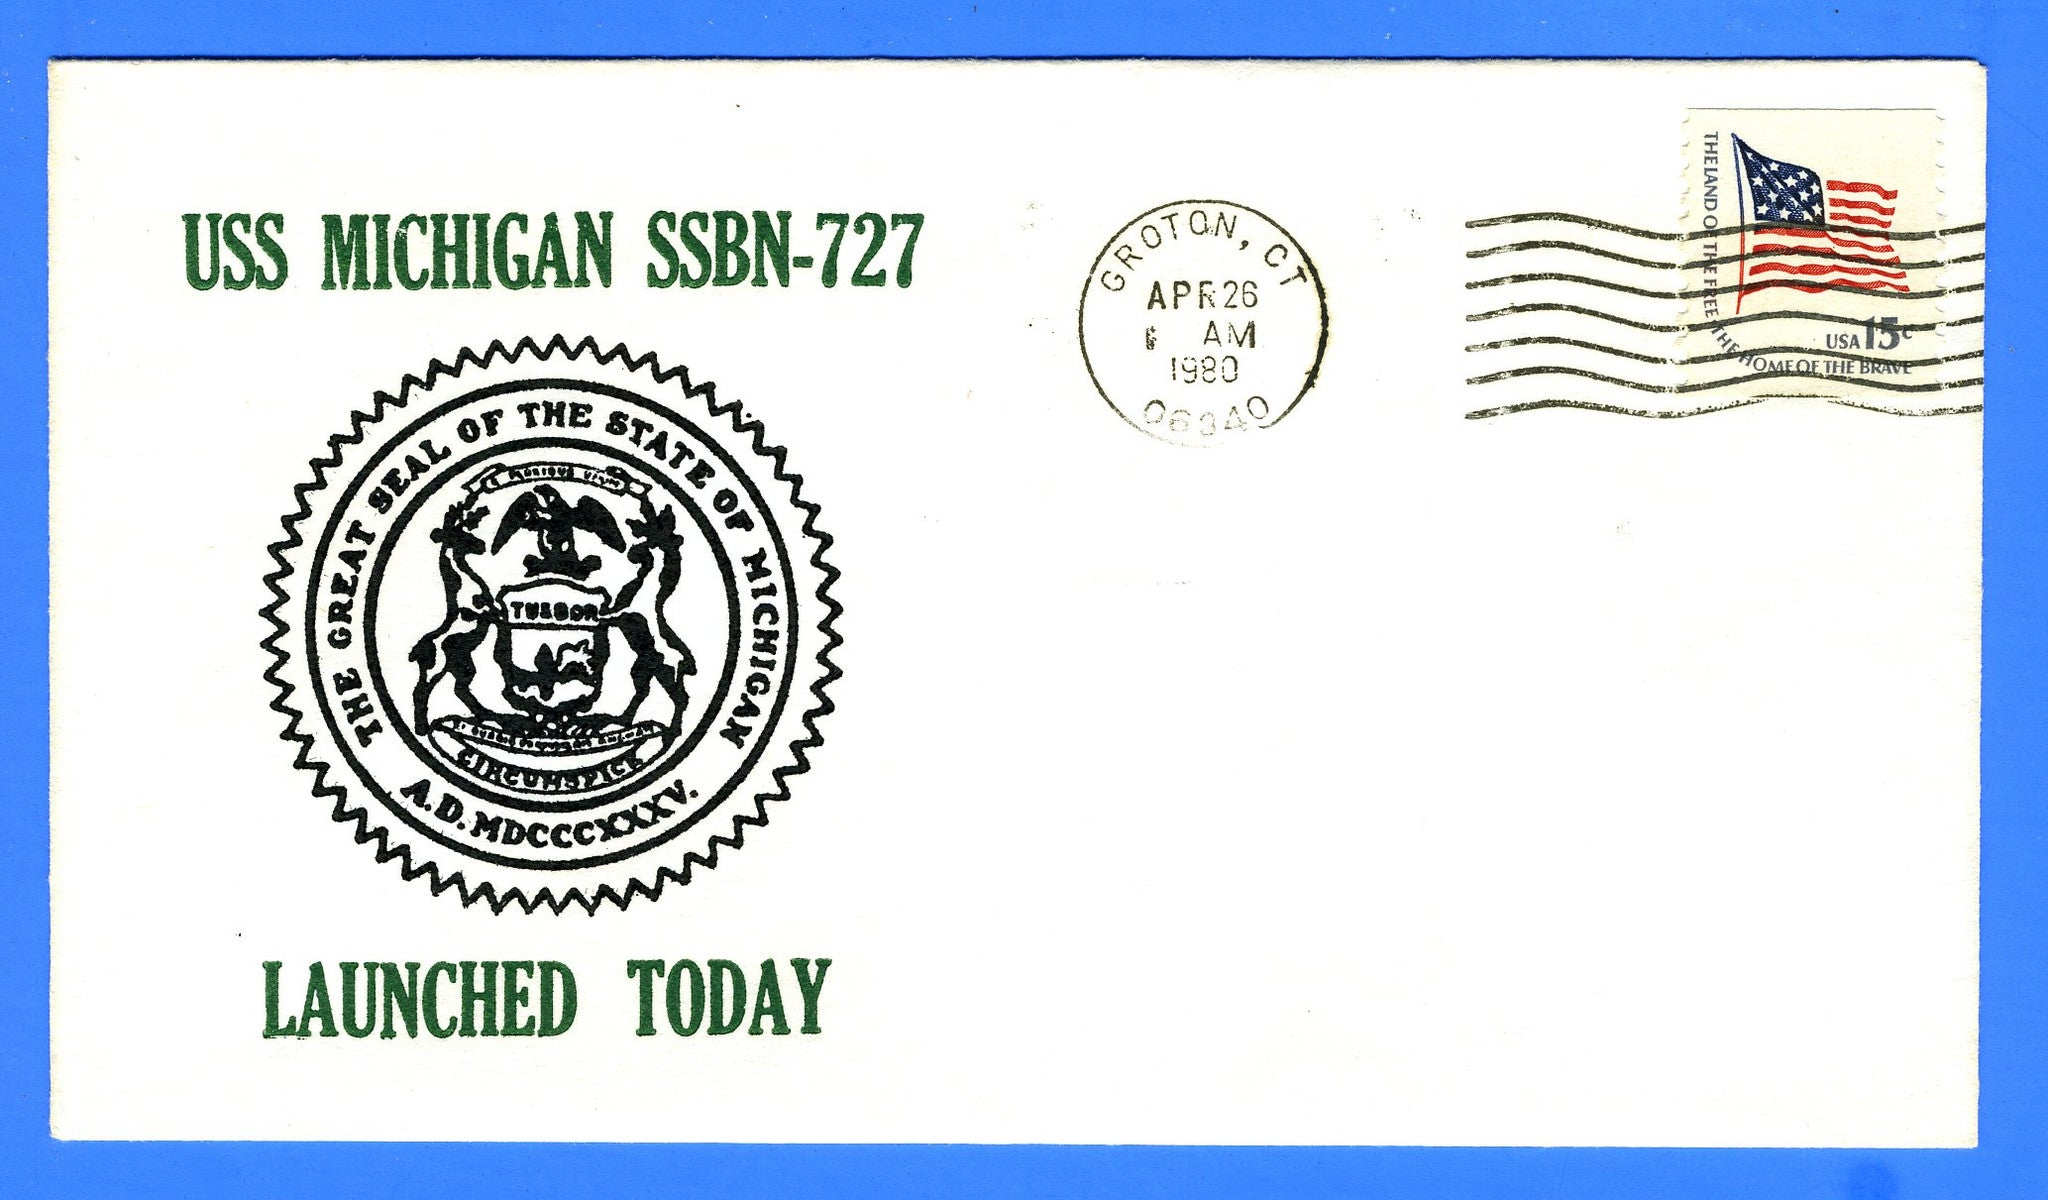 USS Michigan SSBN-727 Launched April 26, 1980 - Cachet by Decatur Chapter 4, USCS